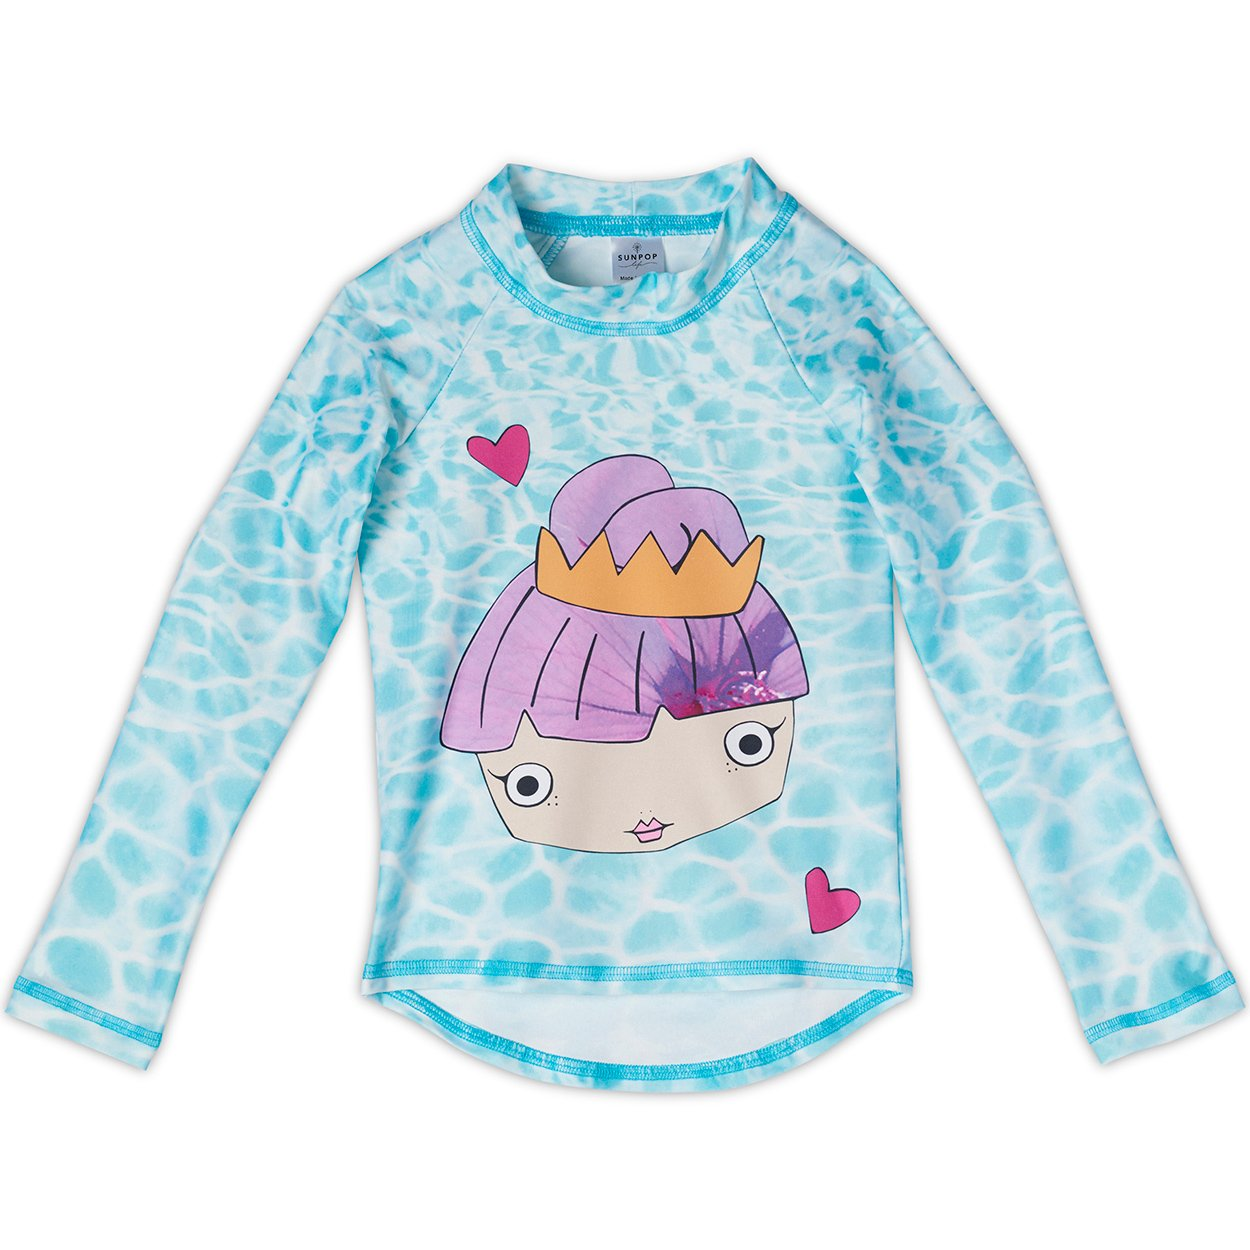 Mermaid Rash Guard Top UPF 50+ for Girls